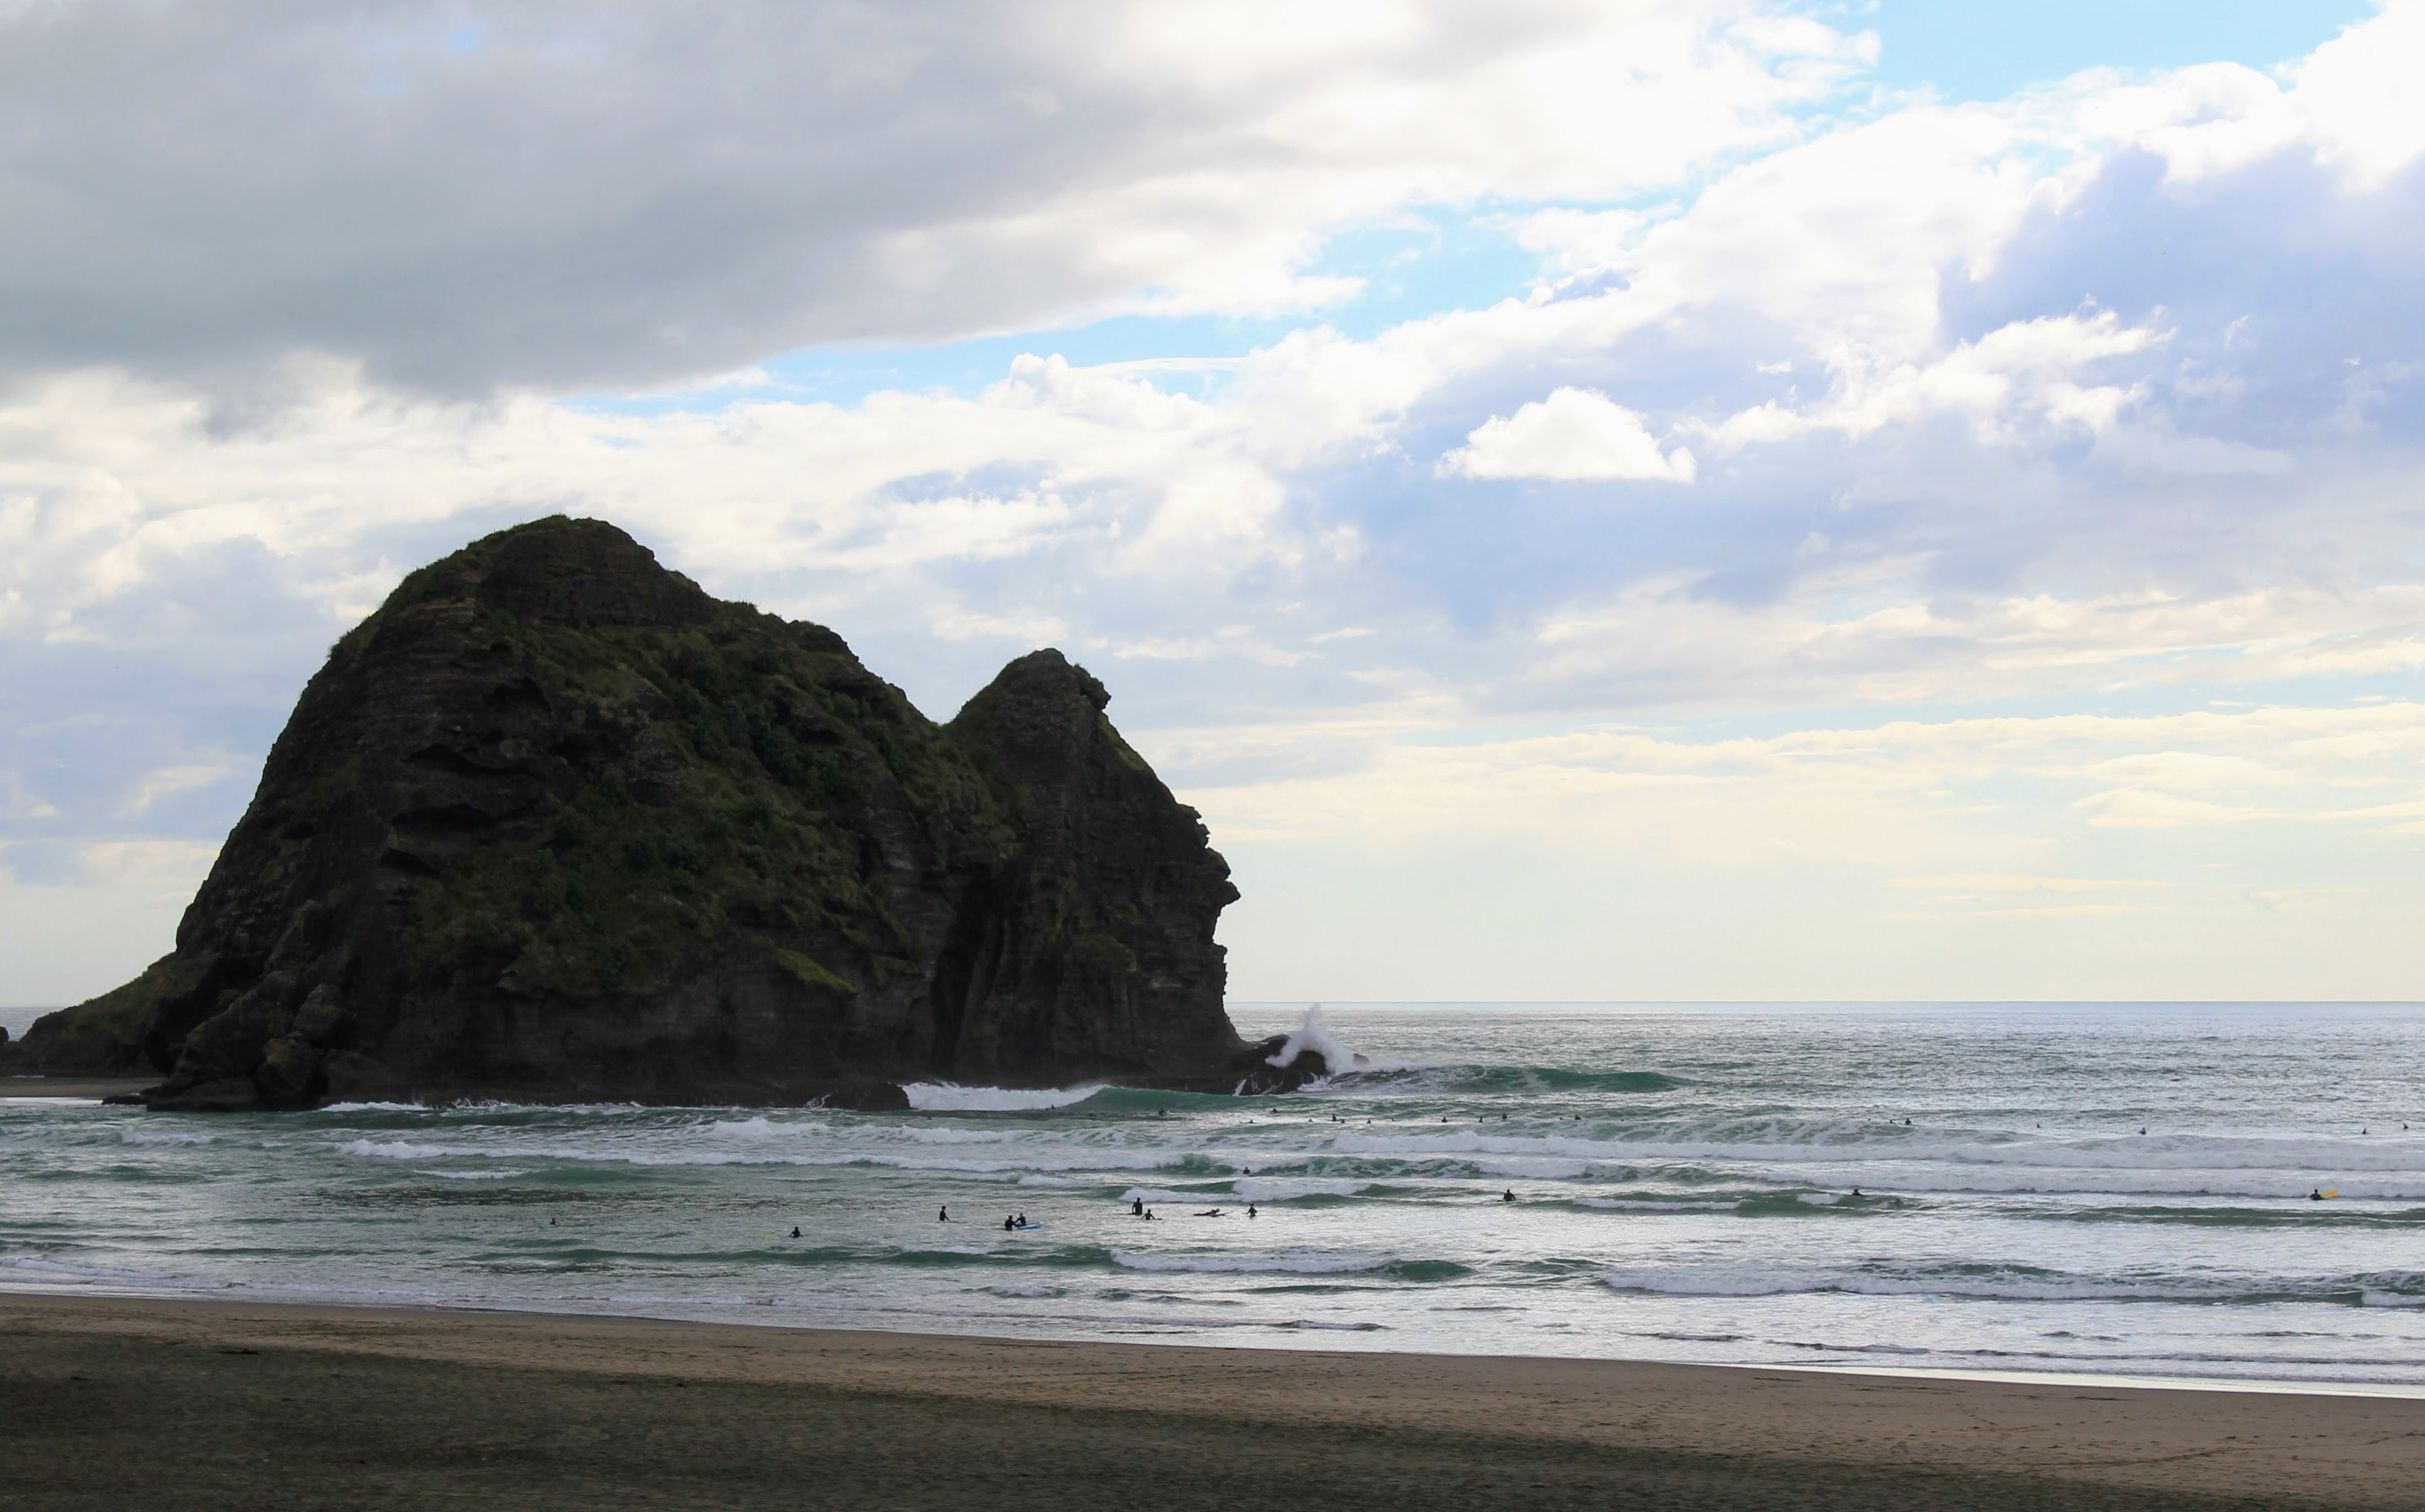 Piha's lion rock